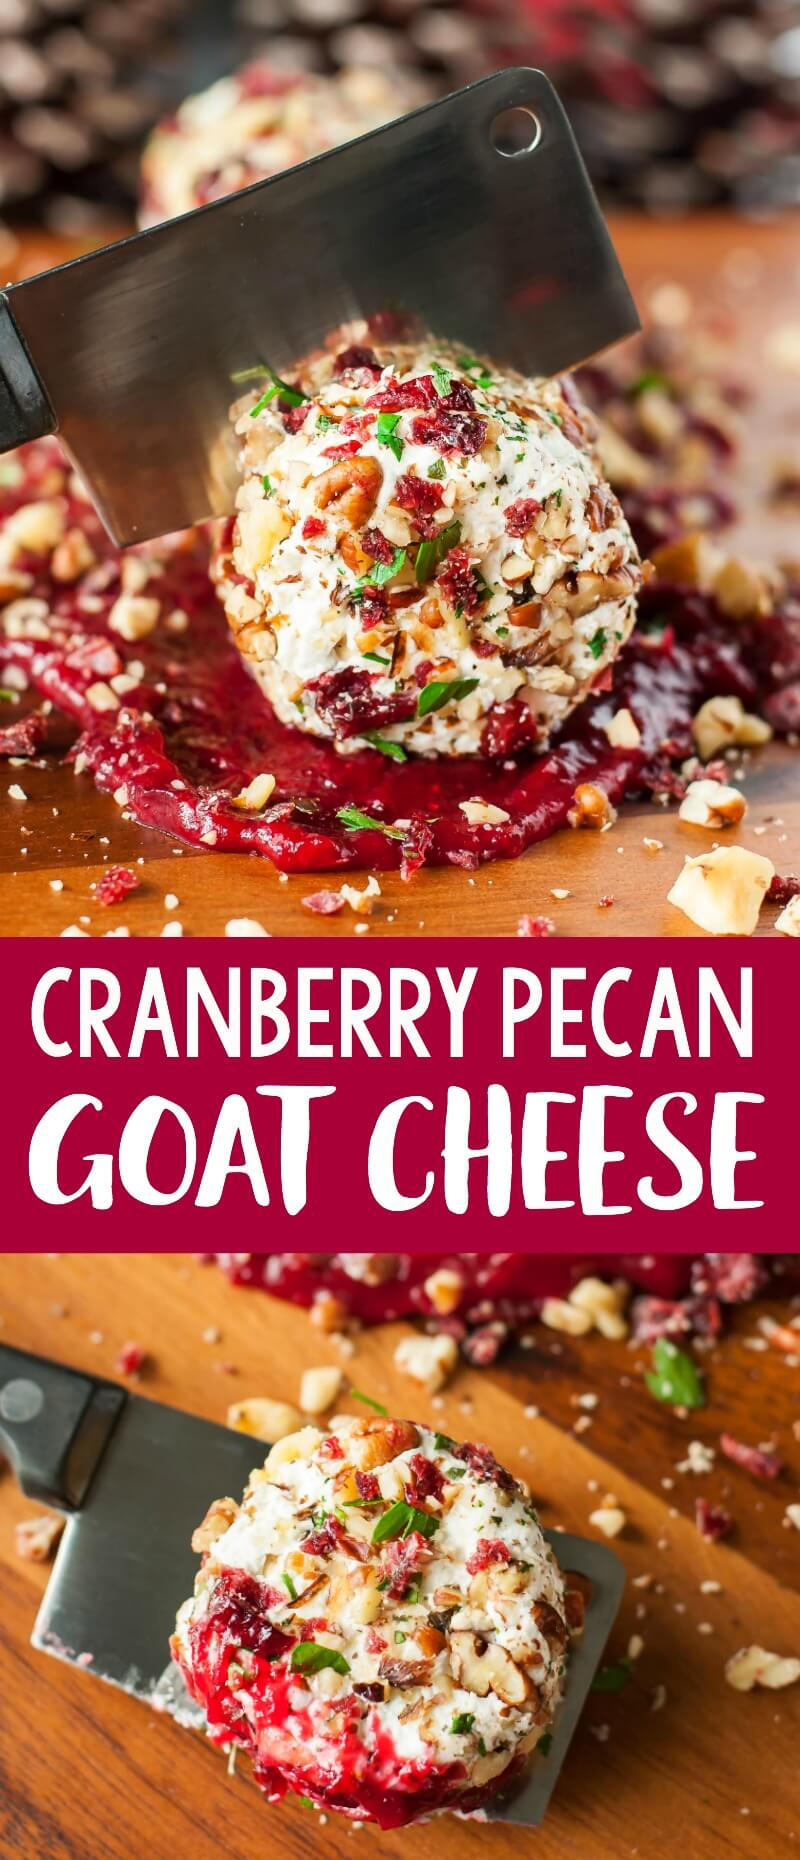 This Cranberry Goat Cheese Log with Walnuts, Pecans, and Parsley is a festive holiday appetizer is sure to please a crowd. It's quick, easy, and delicious! #appetizer #partyfood #cranberry #cranberries #goatcheese #pecan #walnut #holidayrecipes #thanksgiving #christmas